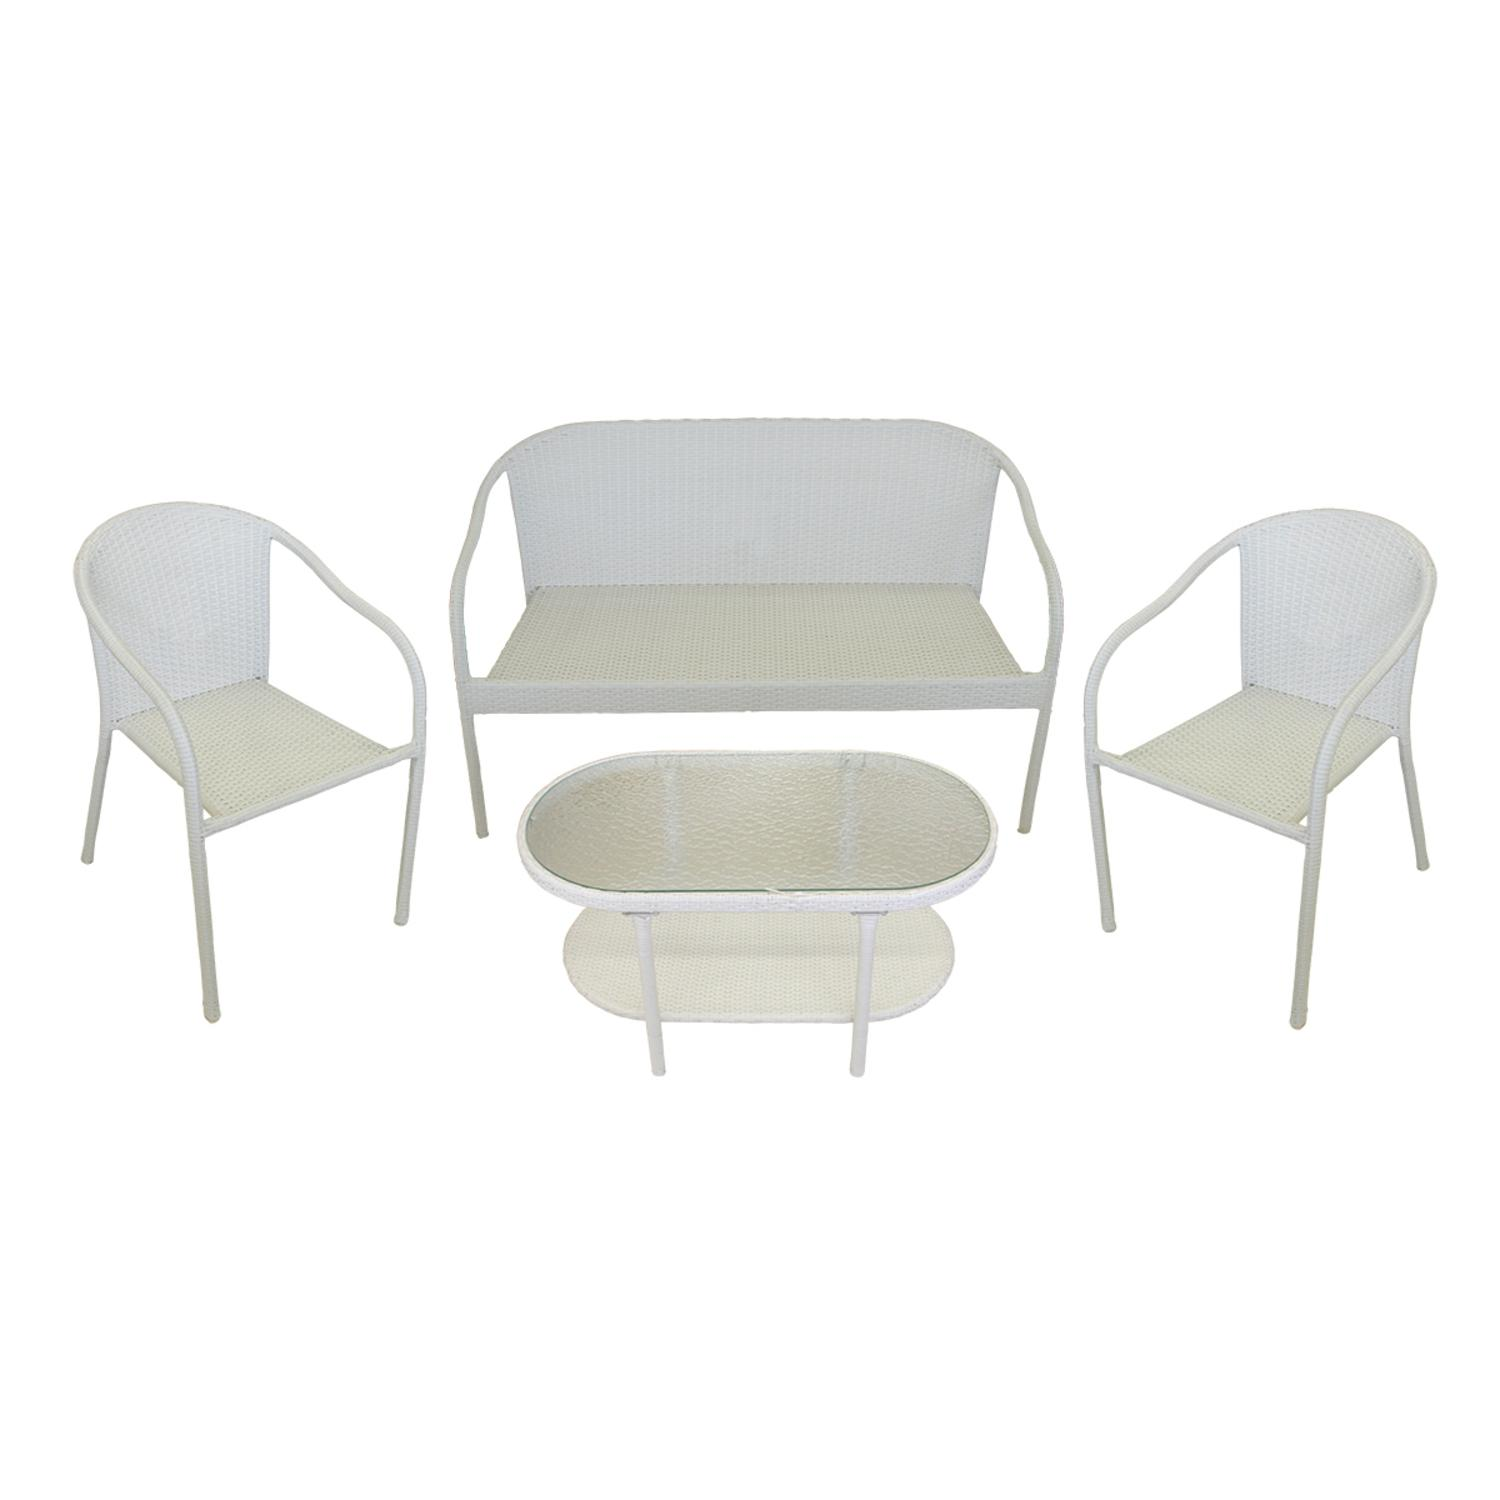 Resin Chairs 4 Piece White Resin Wicker Patio Furniture Set Loveseat 2 Chairs Glass Top Table